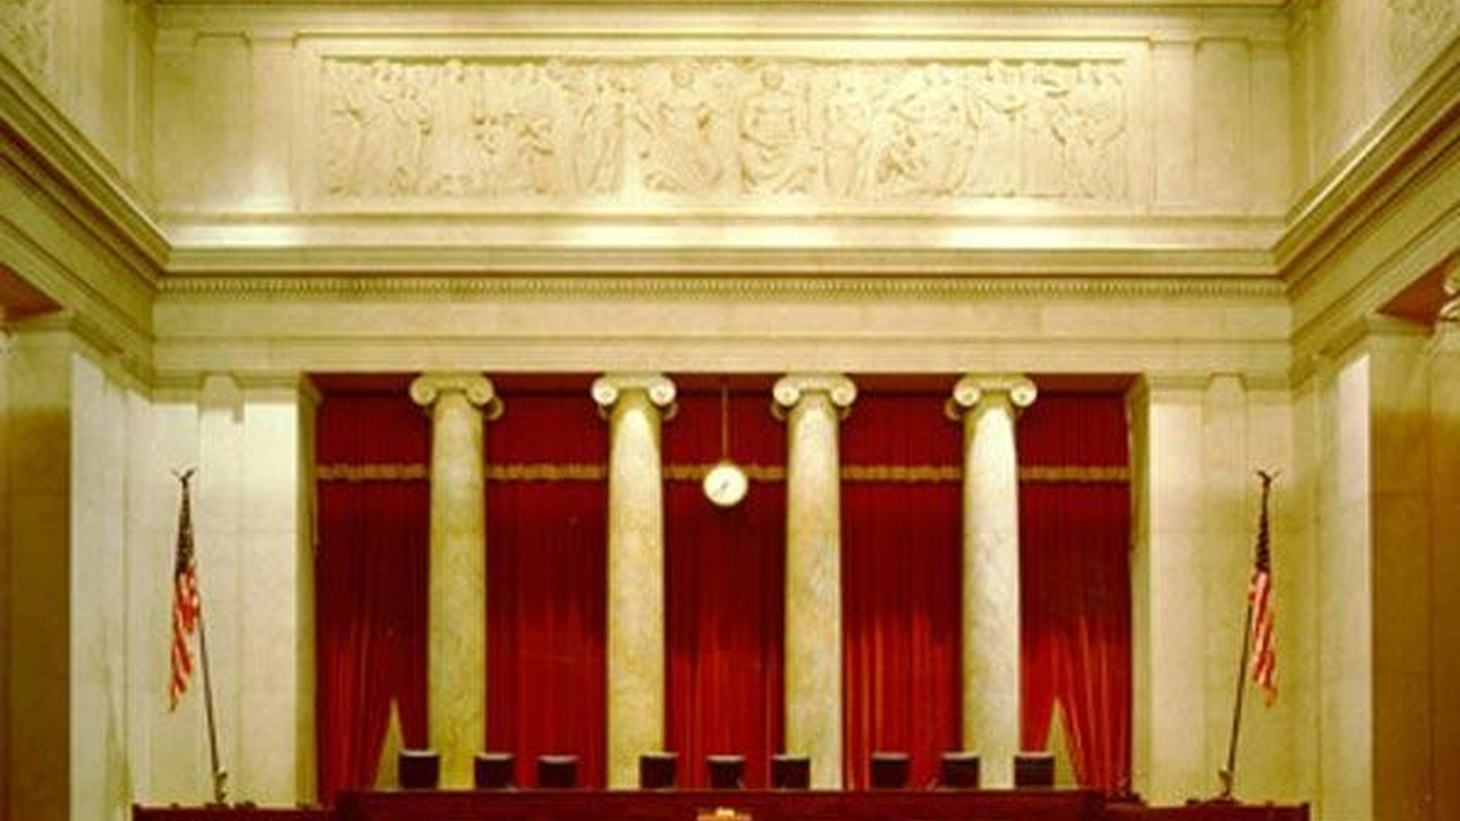 Liberal or Moderate? Man or Woman? Black, White or Brown? Should the next Supreme Court Justice have judicial experience or a record of service in other branches of government? We hear different as President Obama gets ready to pick his first nominee. Also, the pace of unemployment slows, and Pope Benedict visits the Middle East.